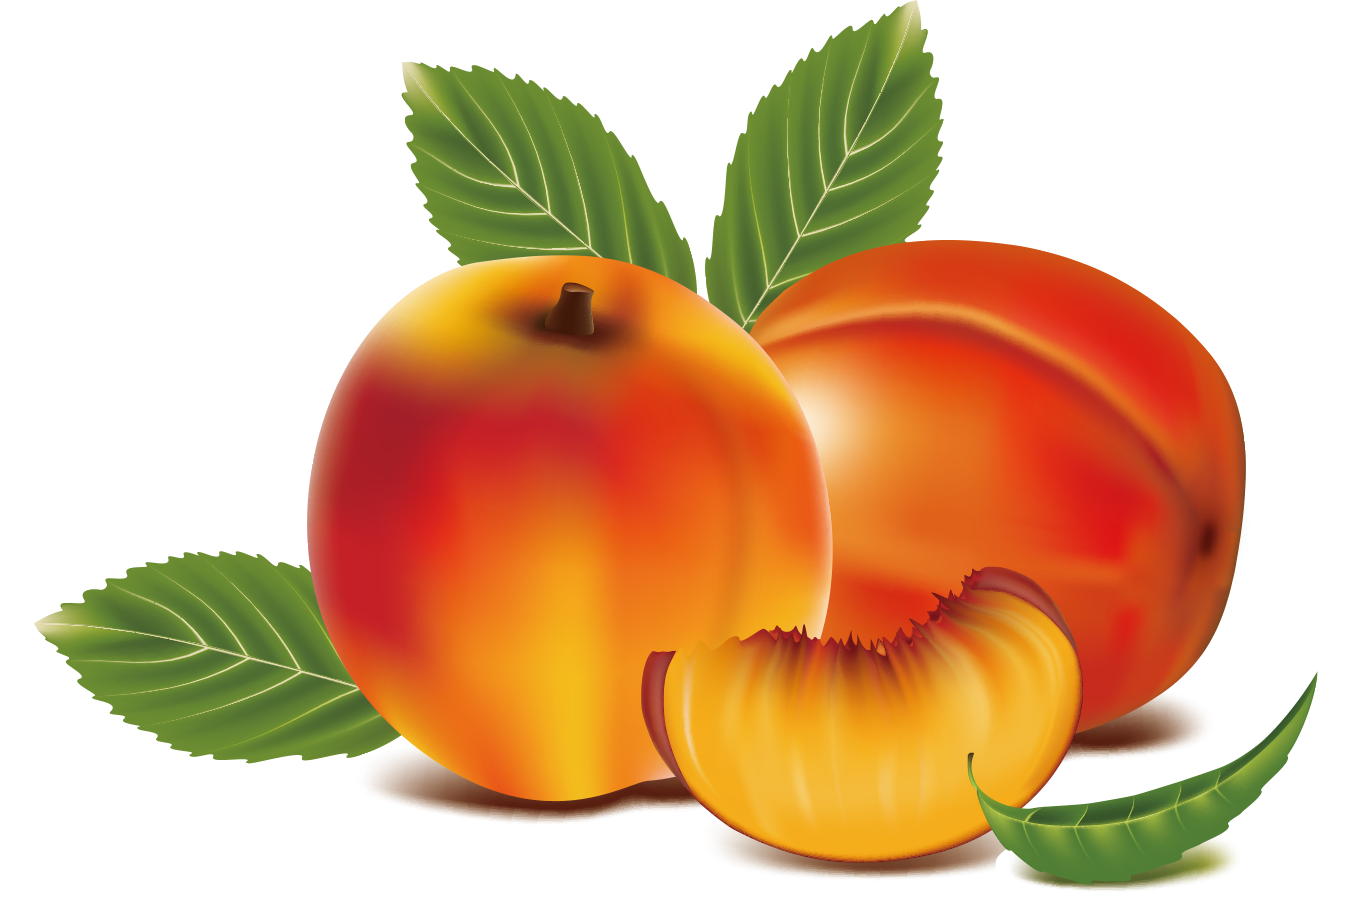 image library stock Peach fruit clip art. Peaches clipart orange food